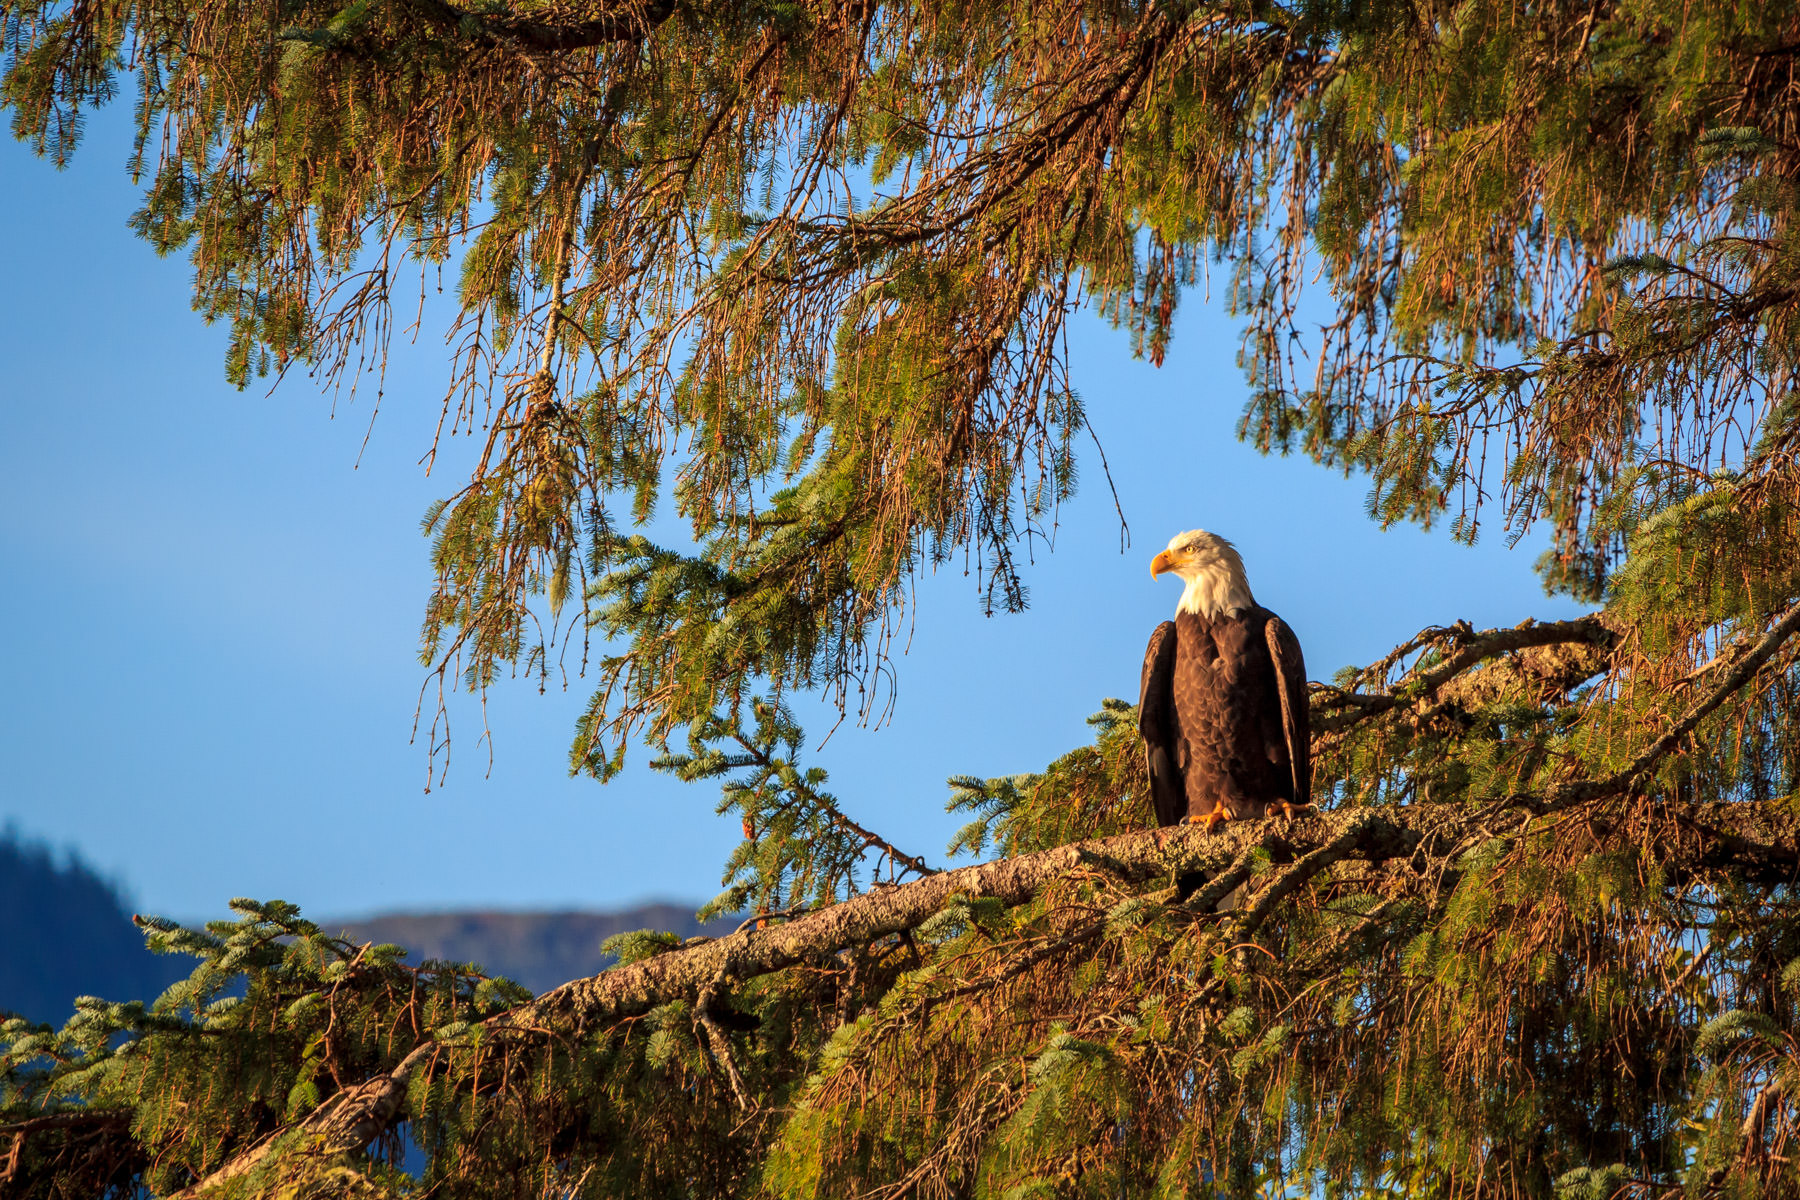 A bald eagle surveys his domain from a treetop in Ketchikan, Alaska.